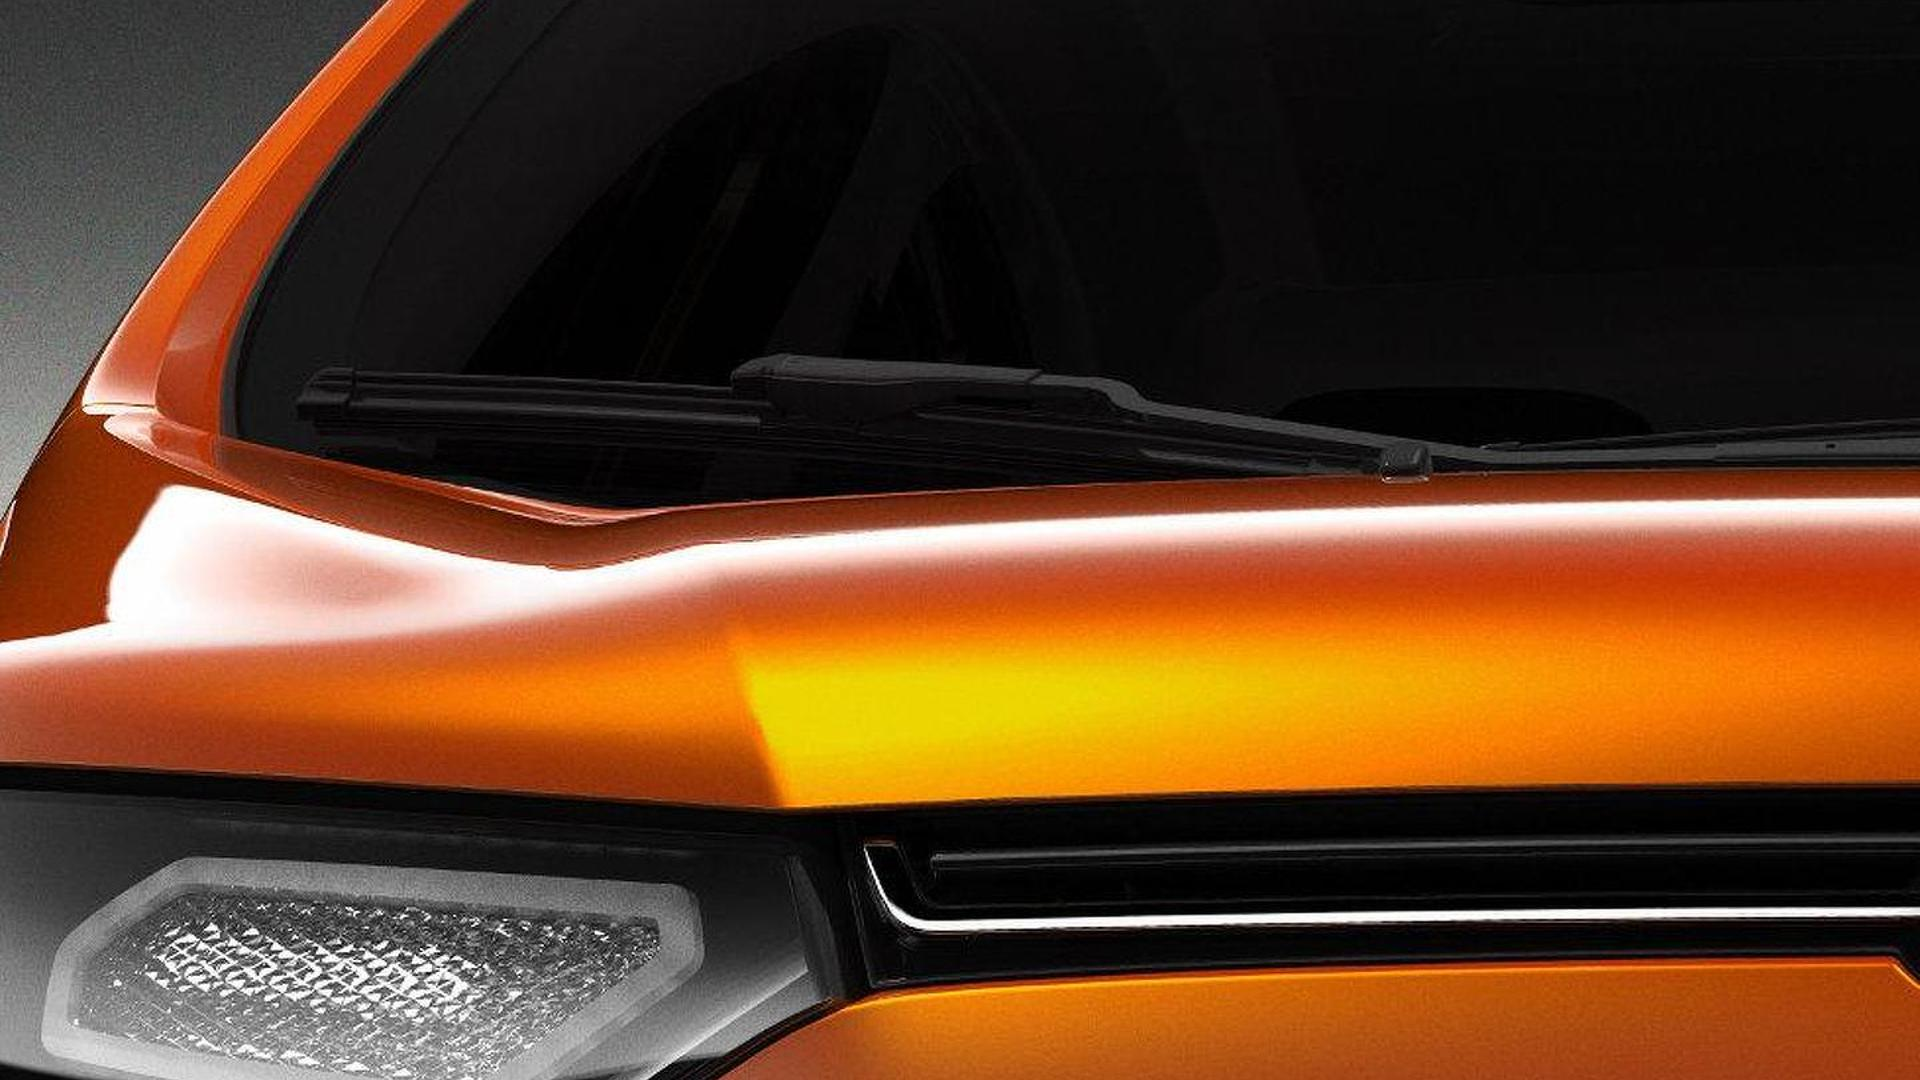 Ford EcoSport compact SUV teased for New Delhi debut